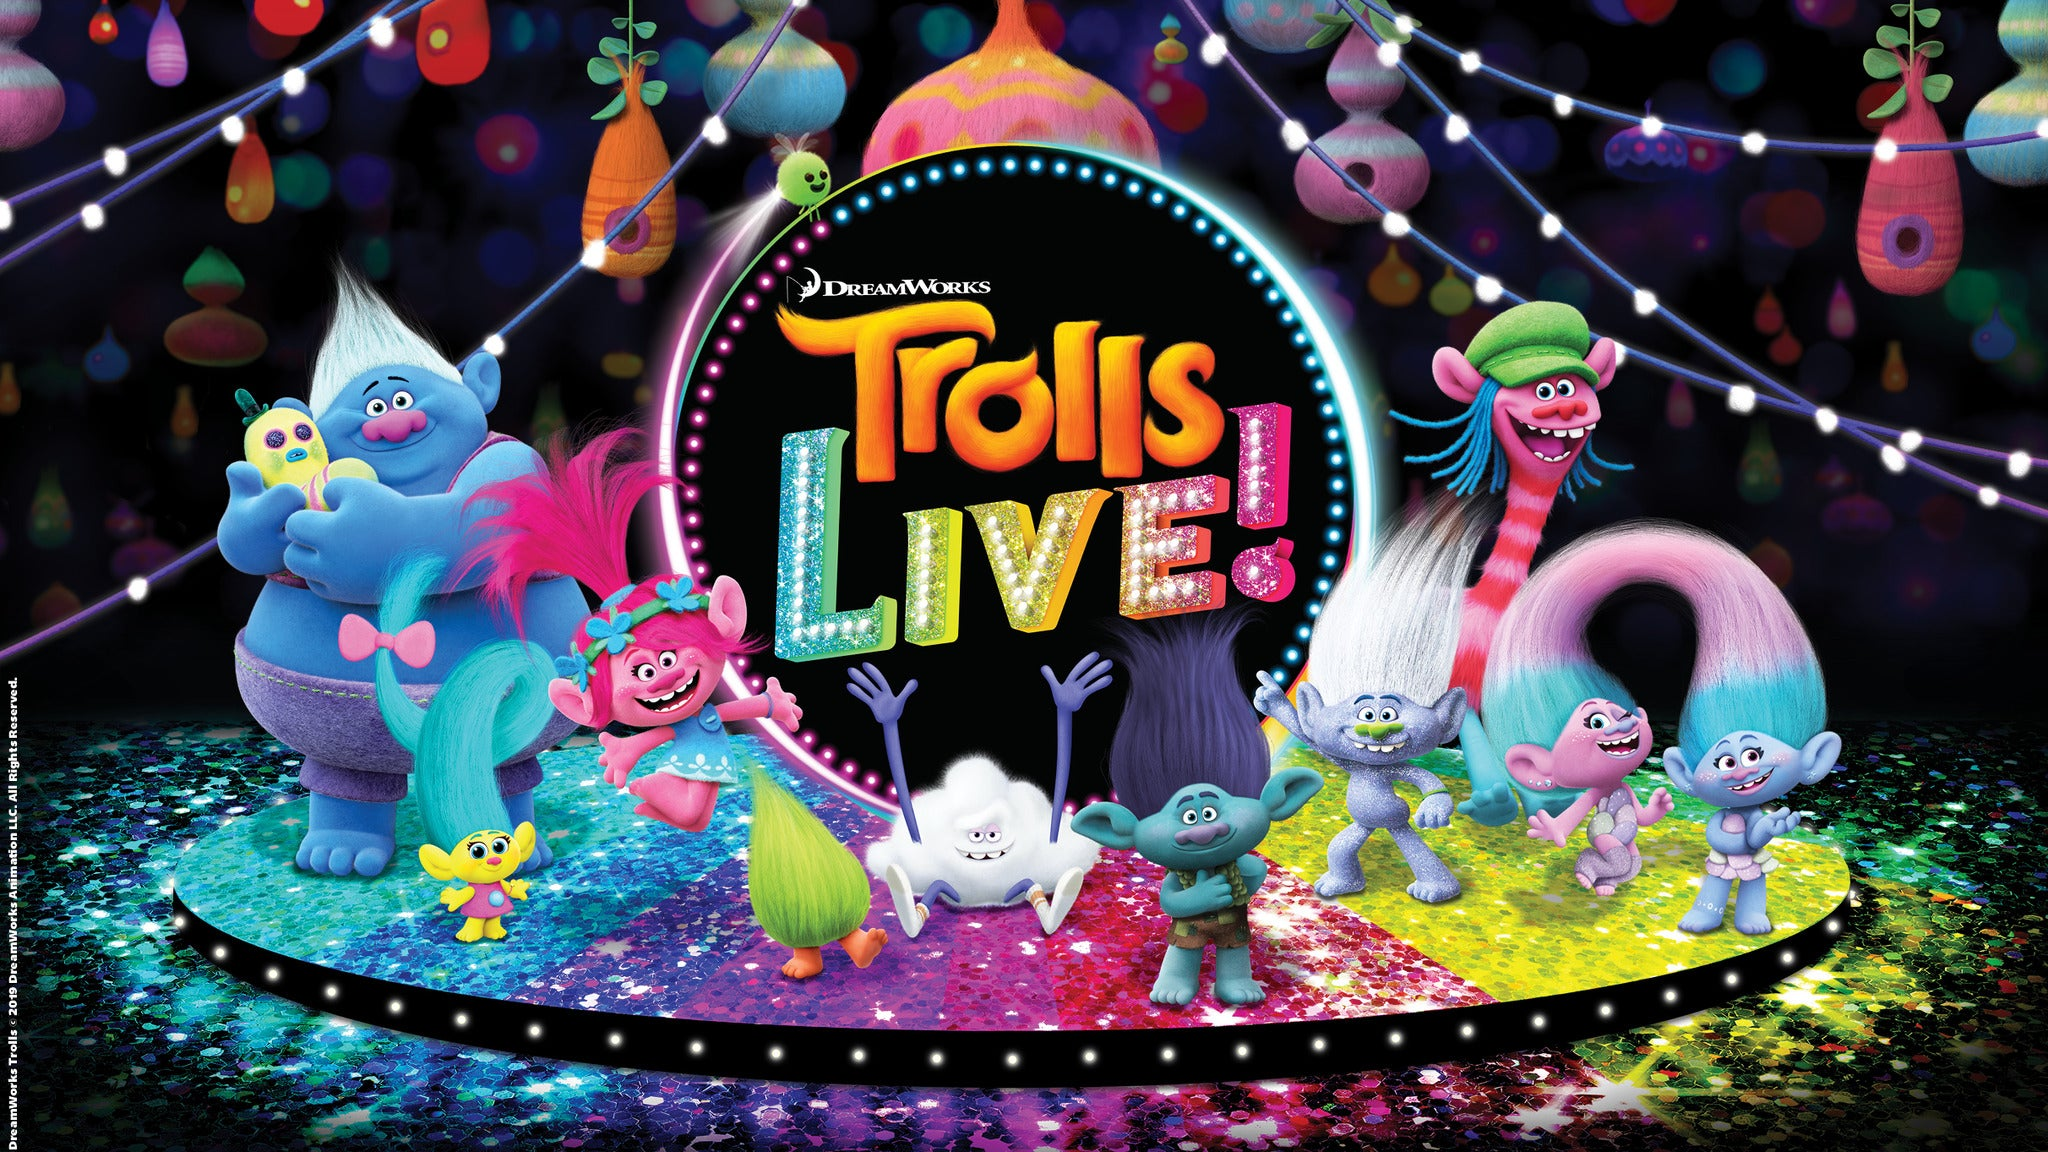 Trolls LIVE! at San Jose Civic